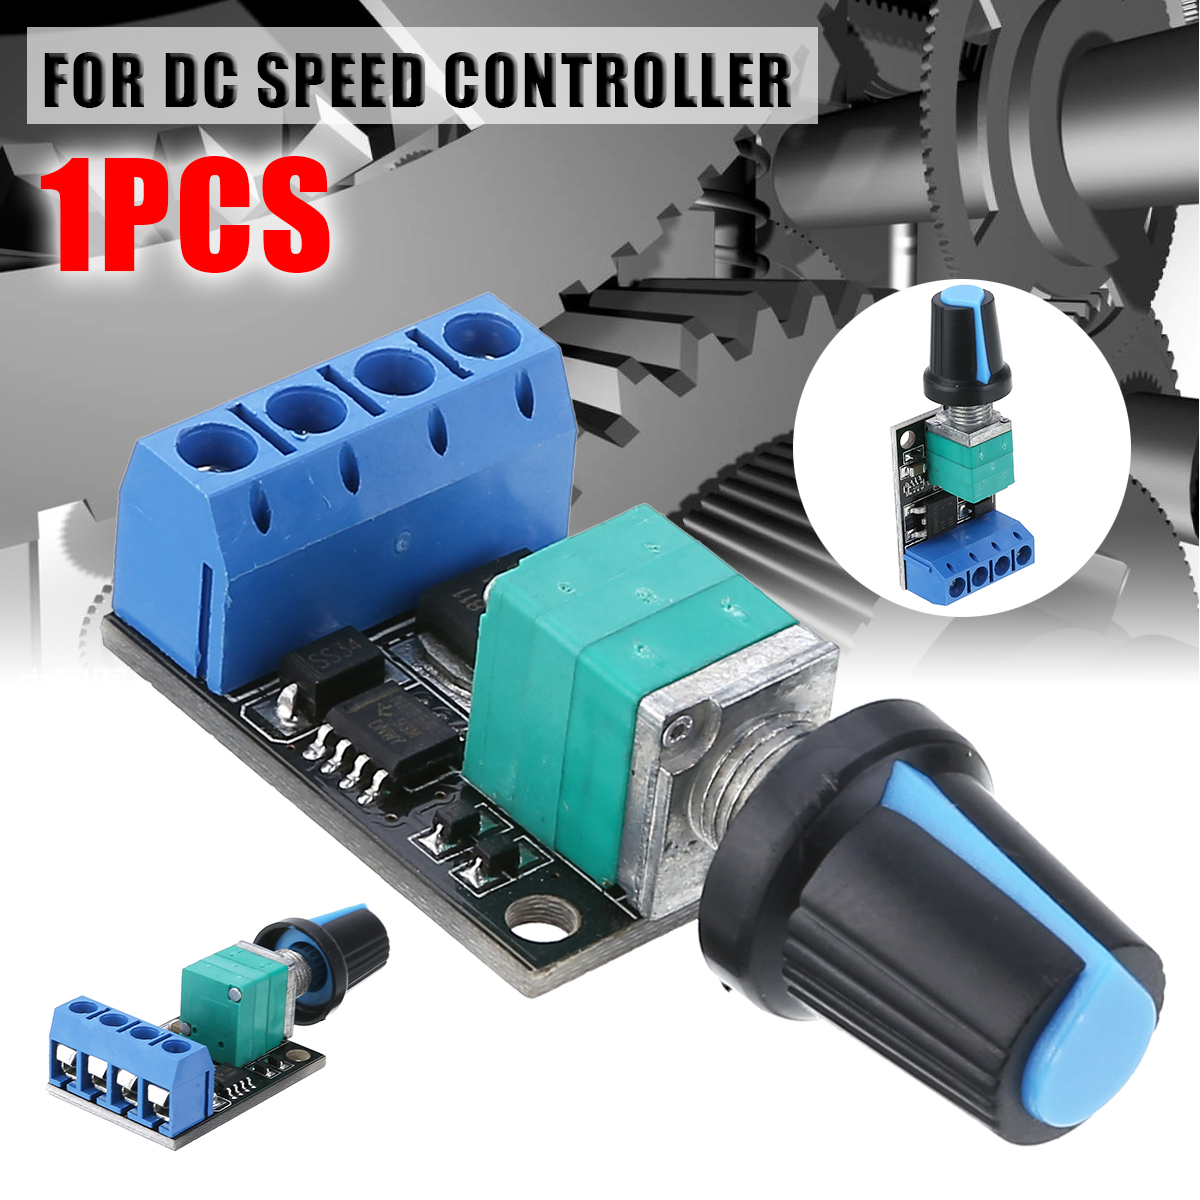 DC 5V-16V PWM Speed Controller Regurator 10A DC Motor Speed Controlling Switch LED Dimmer Controller